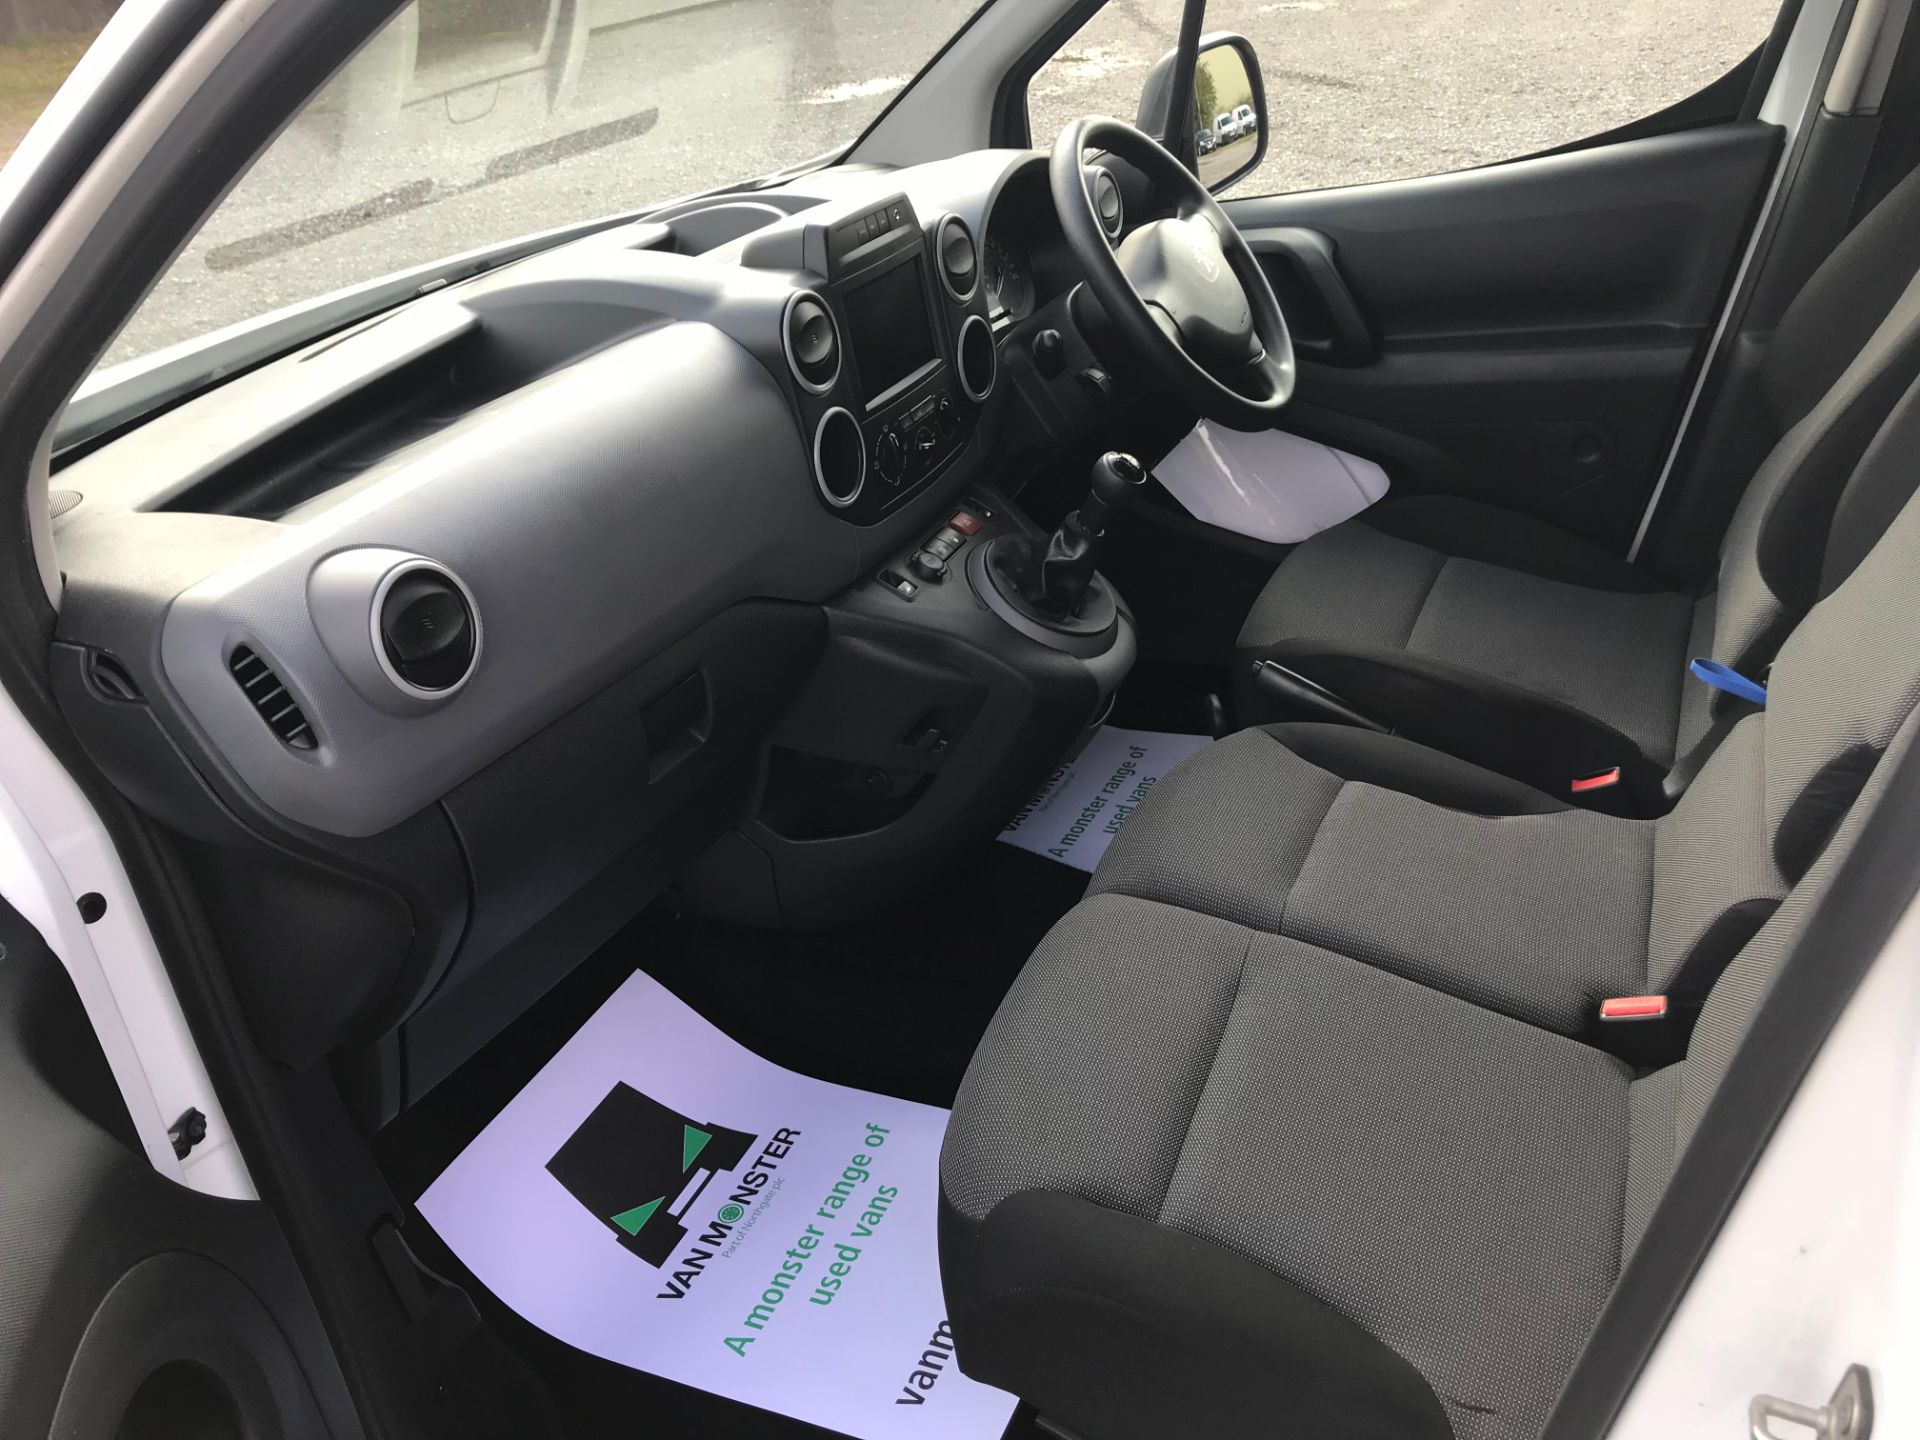 2018 Peugeot Partner 850 1.6 Bluehdi 100 Professional Van [Non Ss]*Restricted to 69MPH* (NV18PXR) Image 22